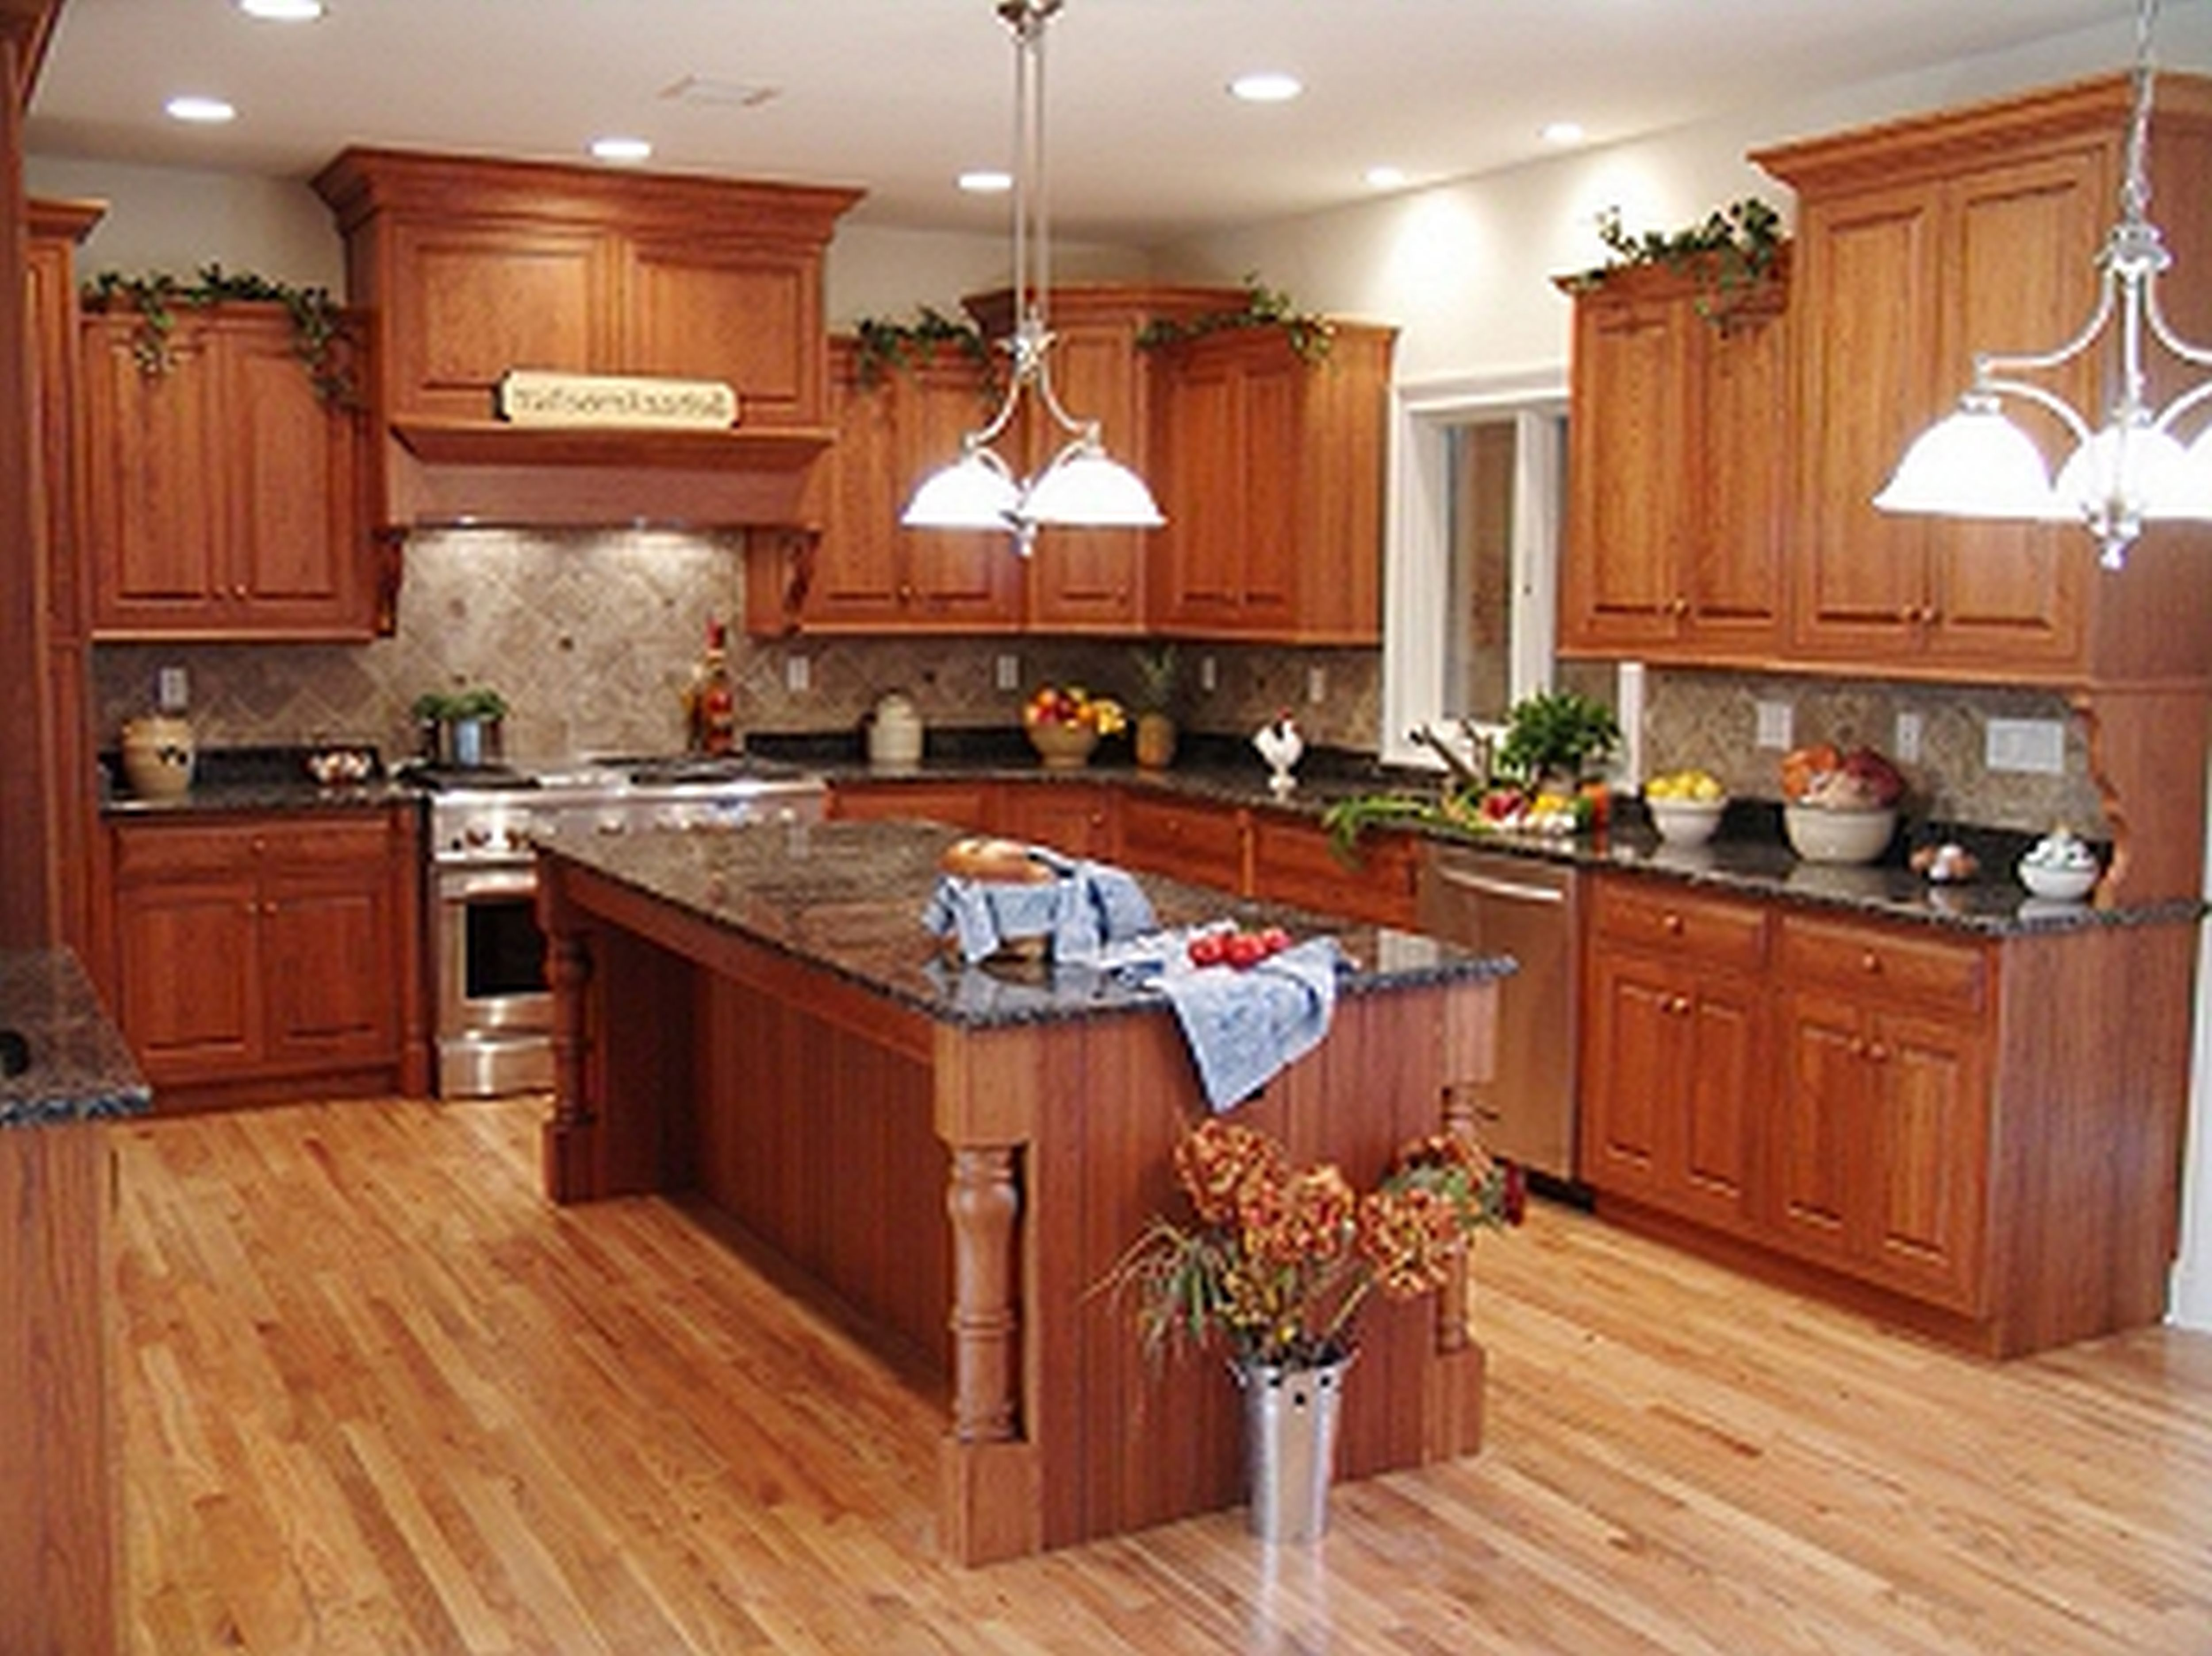 Traditional Wooden Kitchen Island Plans Placed in the Center of Traditional Kitchen with Long Oak Counter